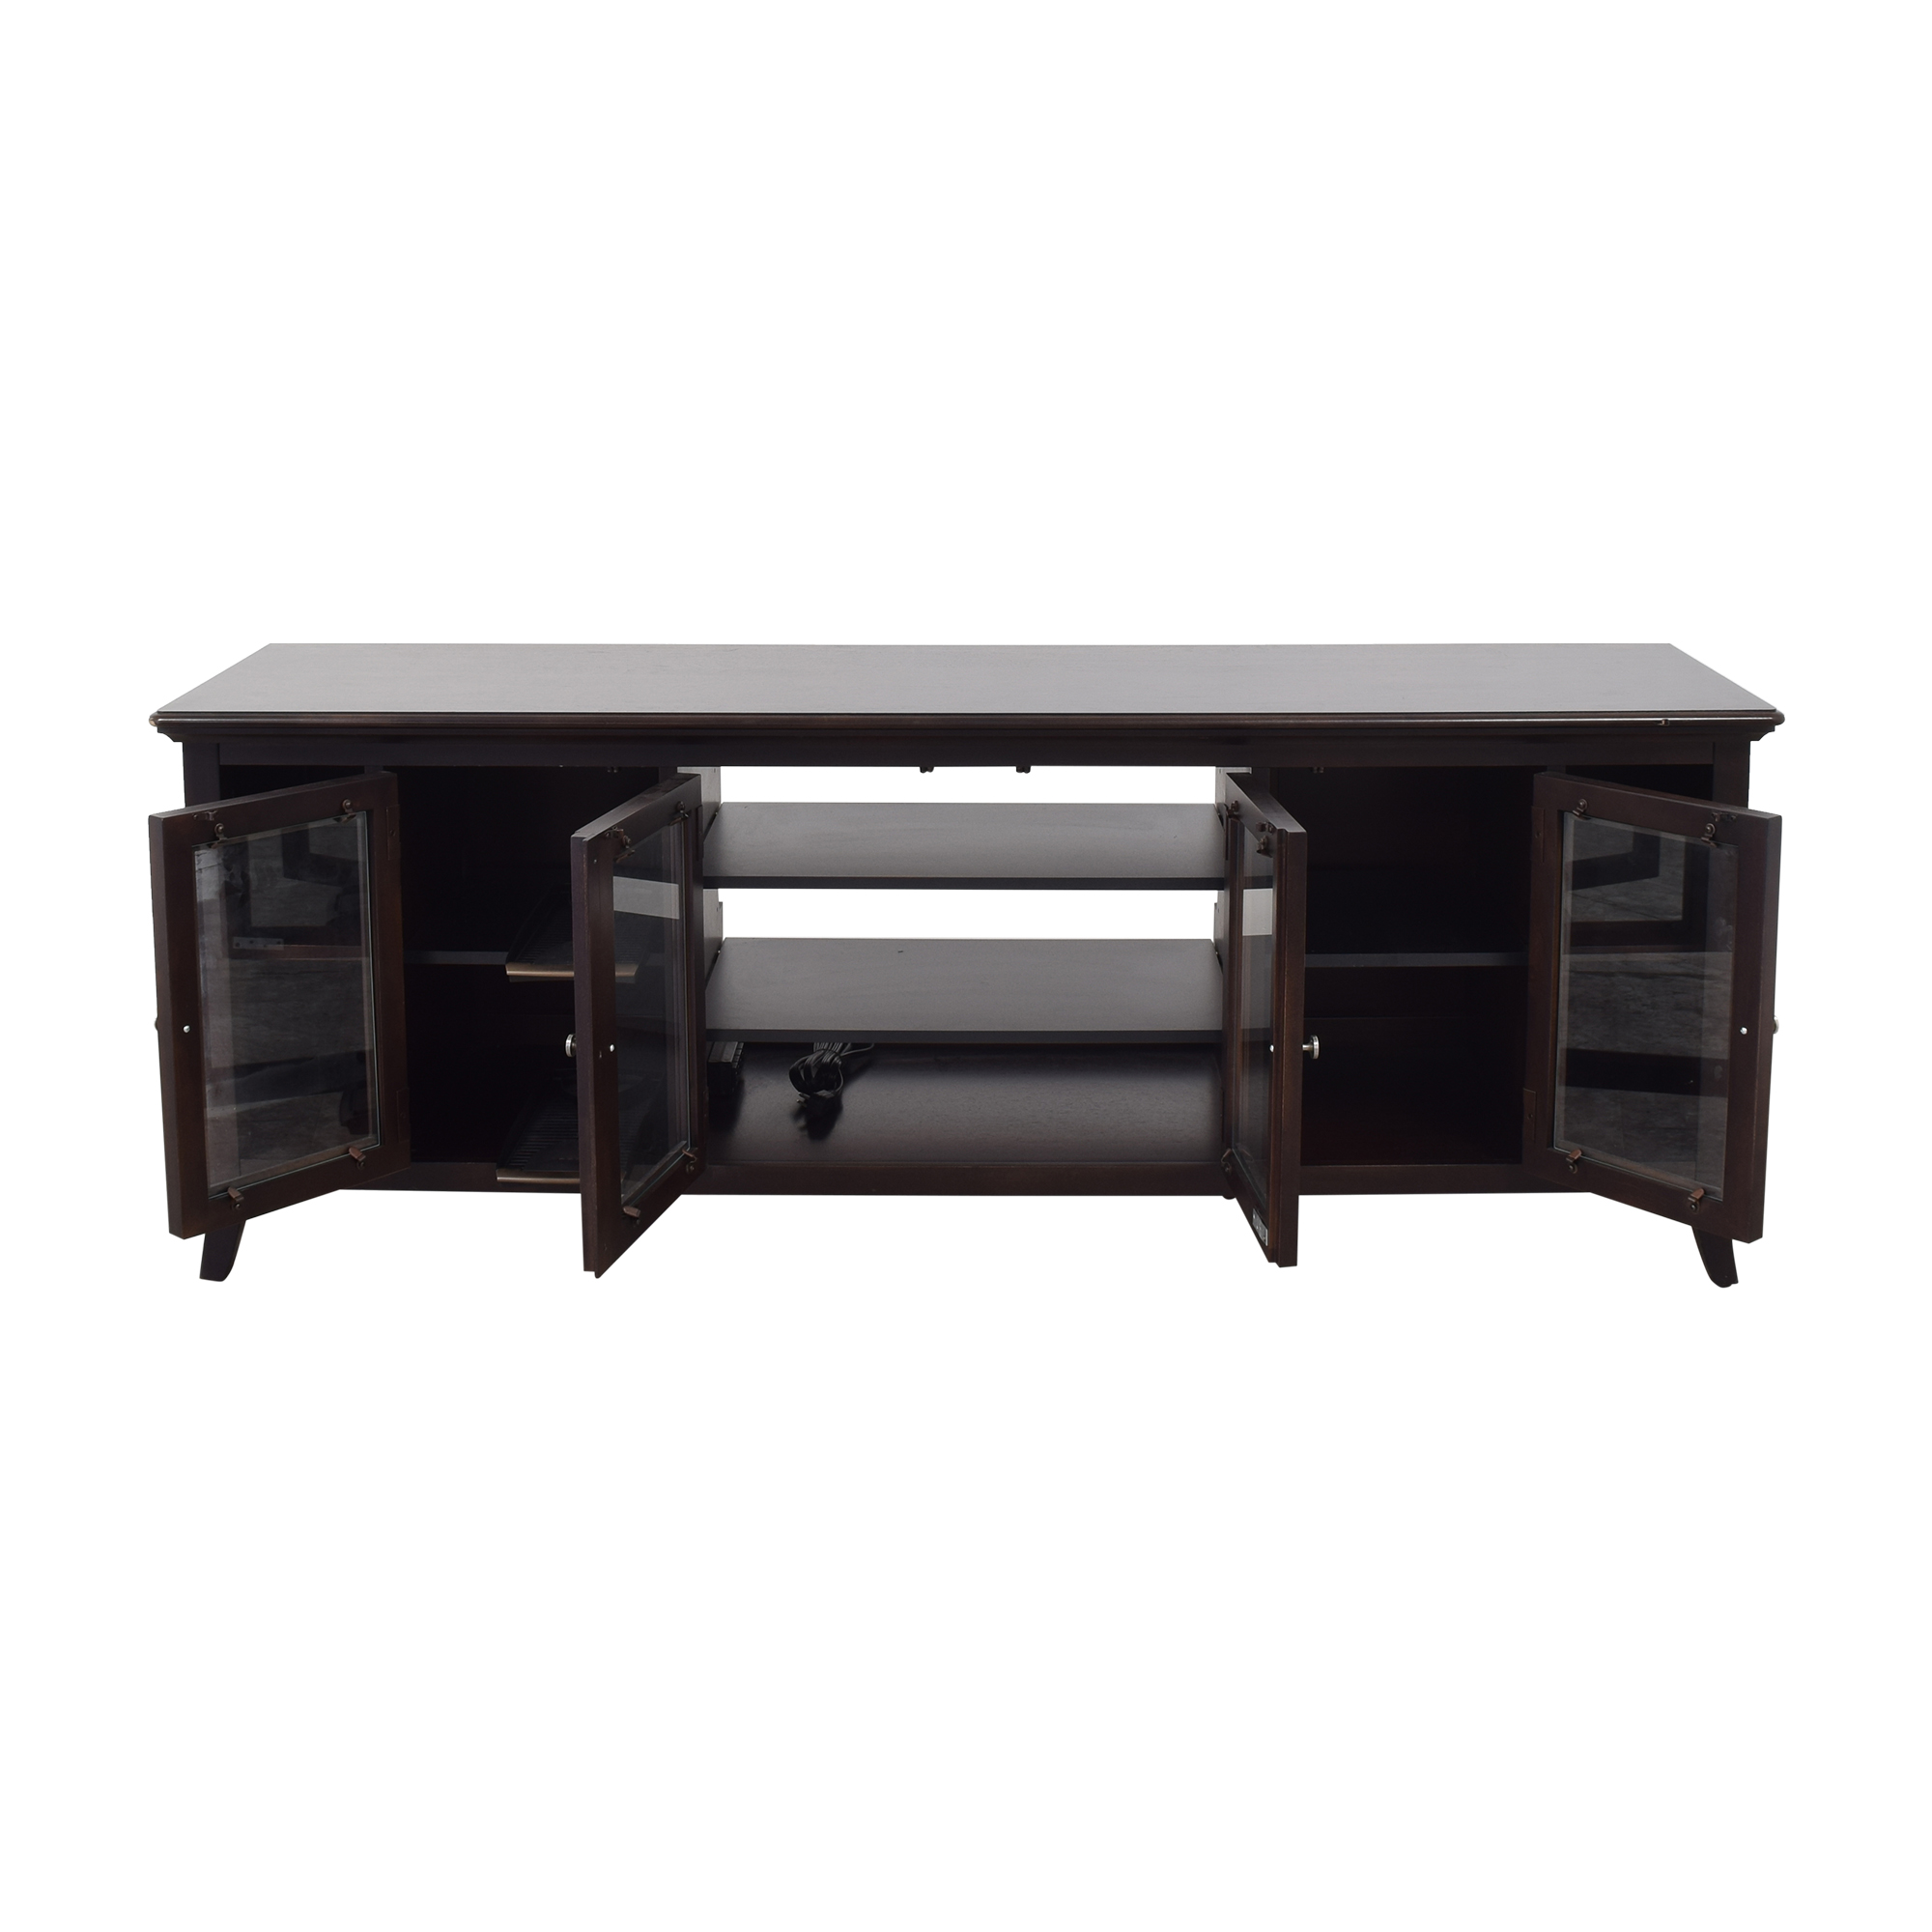 Stanley Furniture Stanley Furniture Media Console coupon